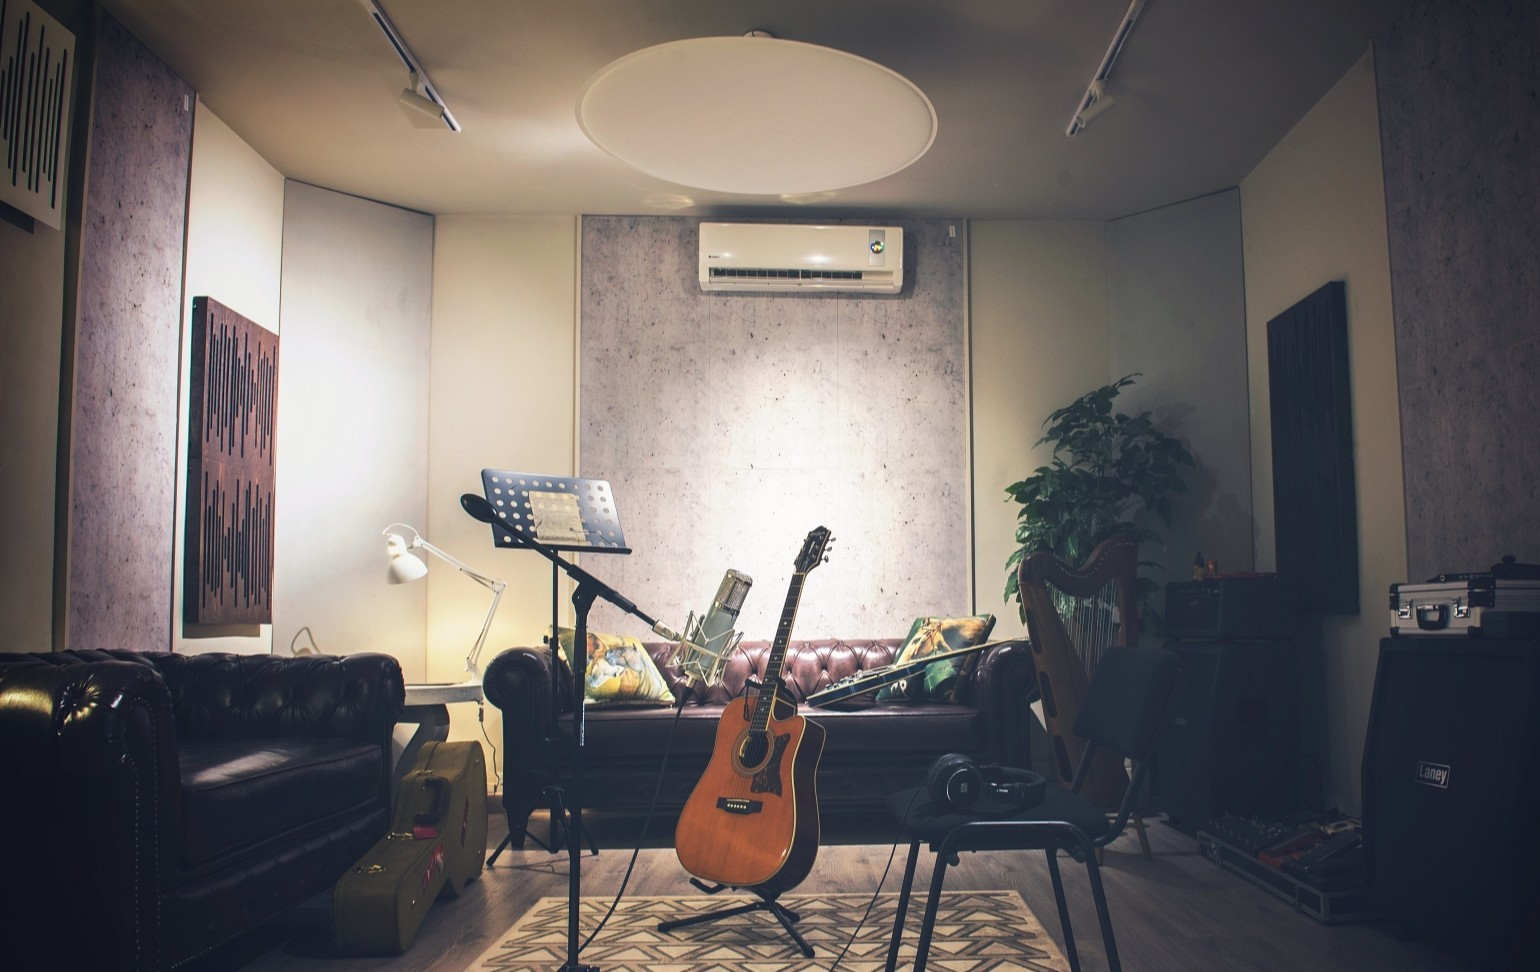 Vicoustic is something stylish, attractive and enhancement of the room for excellent sound quality. When it comes to Xulfi's choice, he has always looked for perfection when it comes to anything related to music. This time, he wanted to have something more than merely a recording studio.